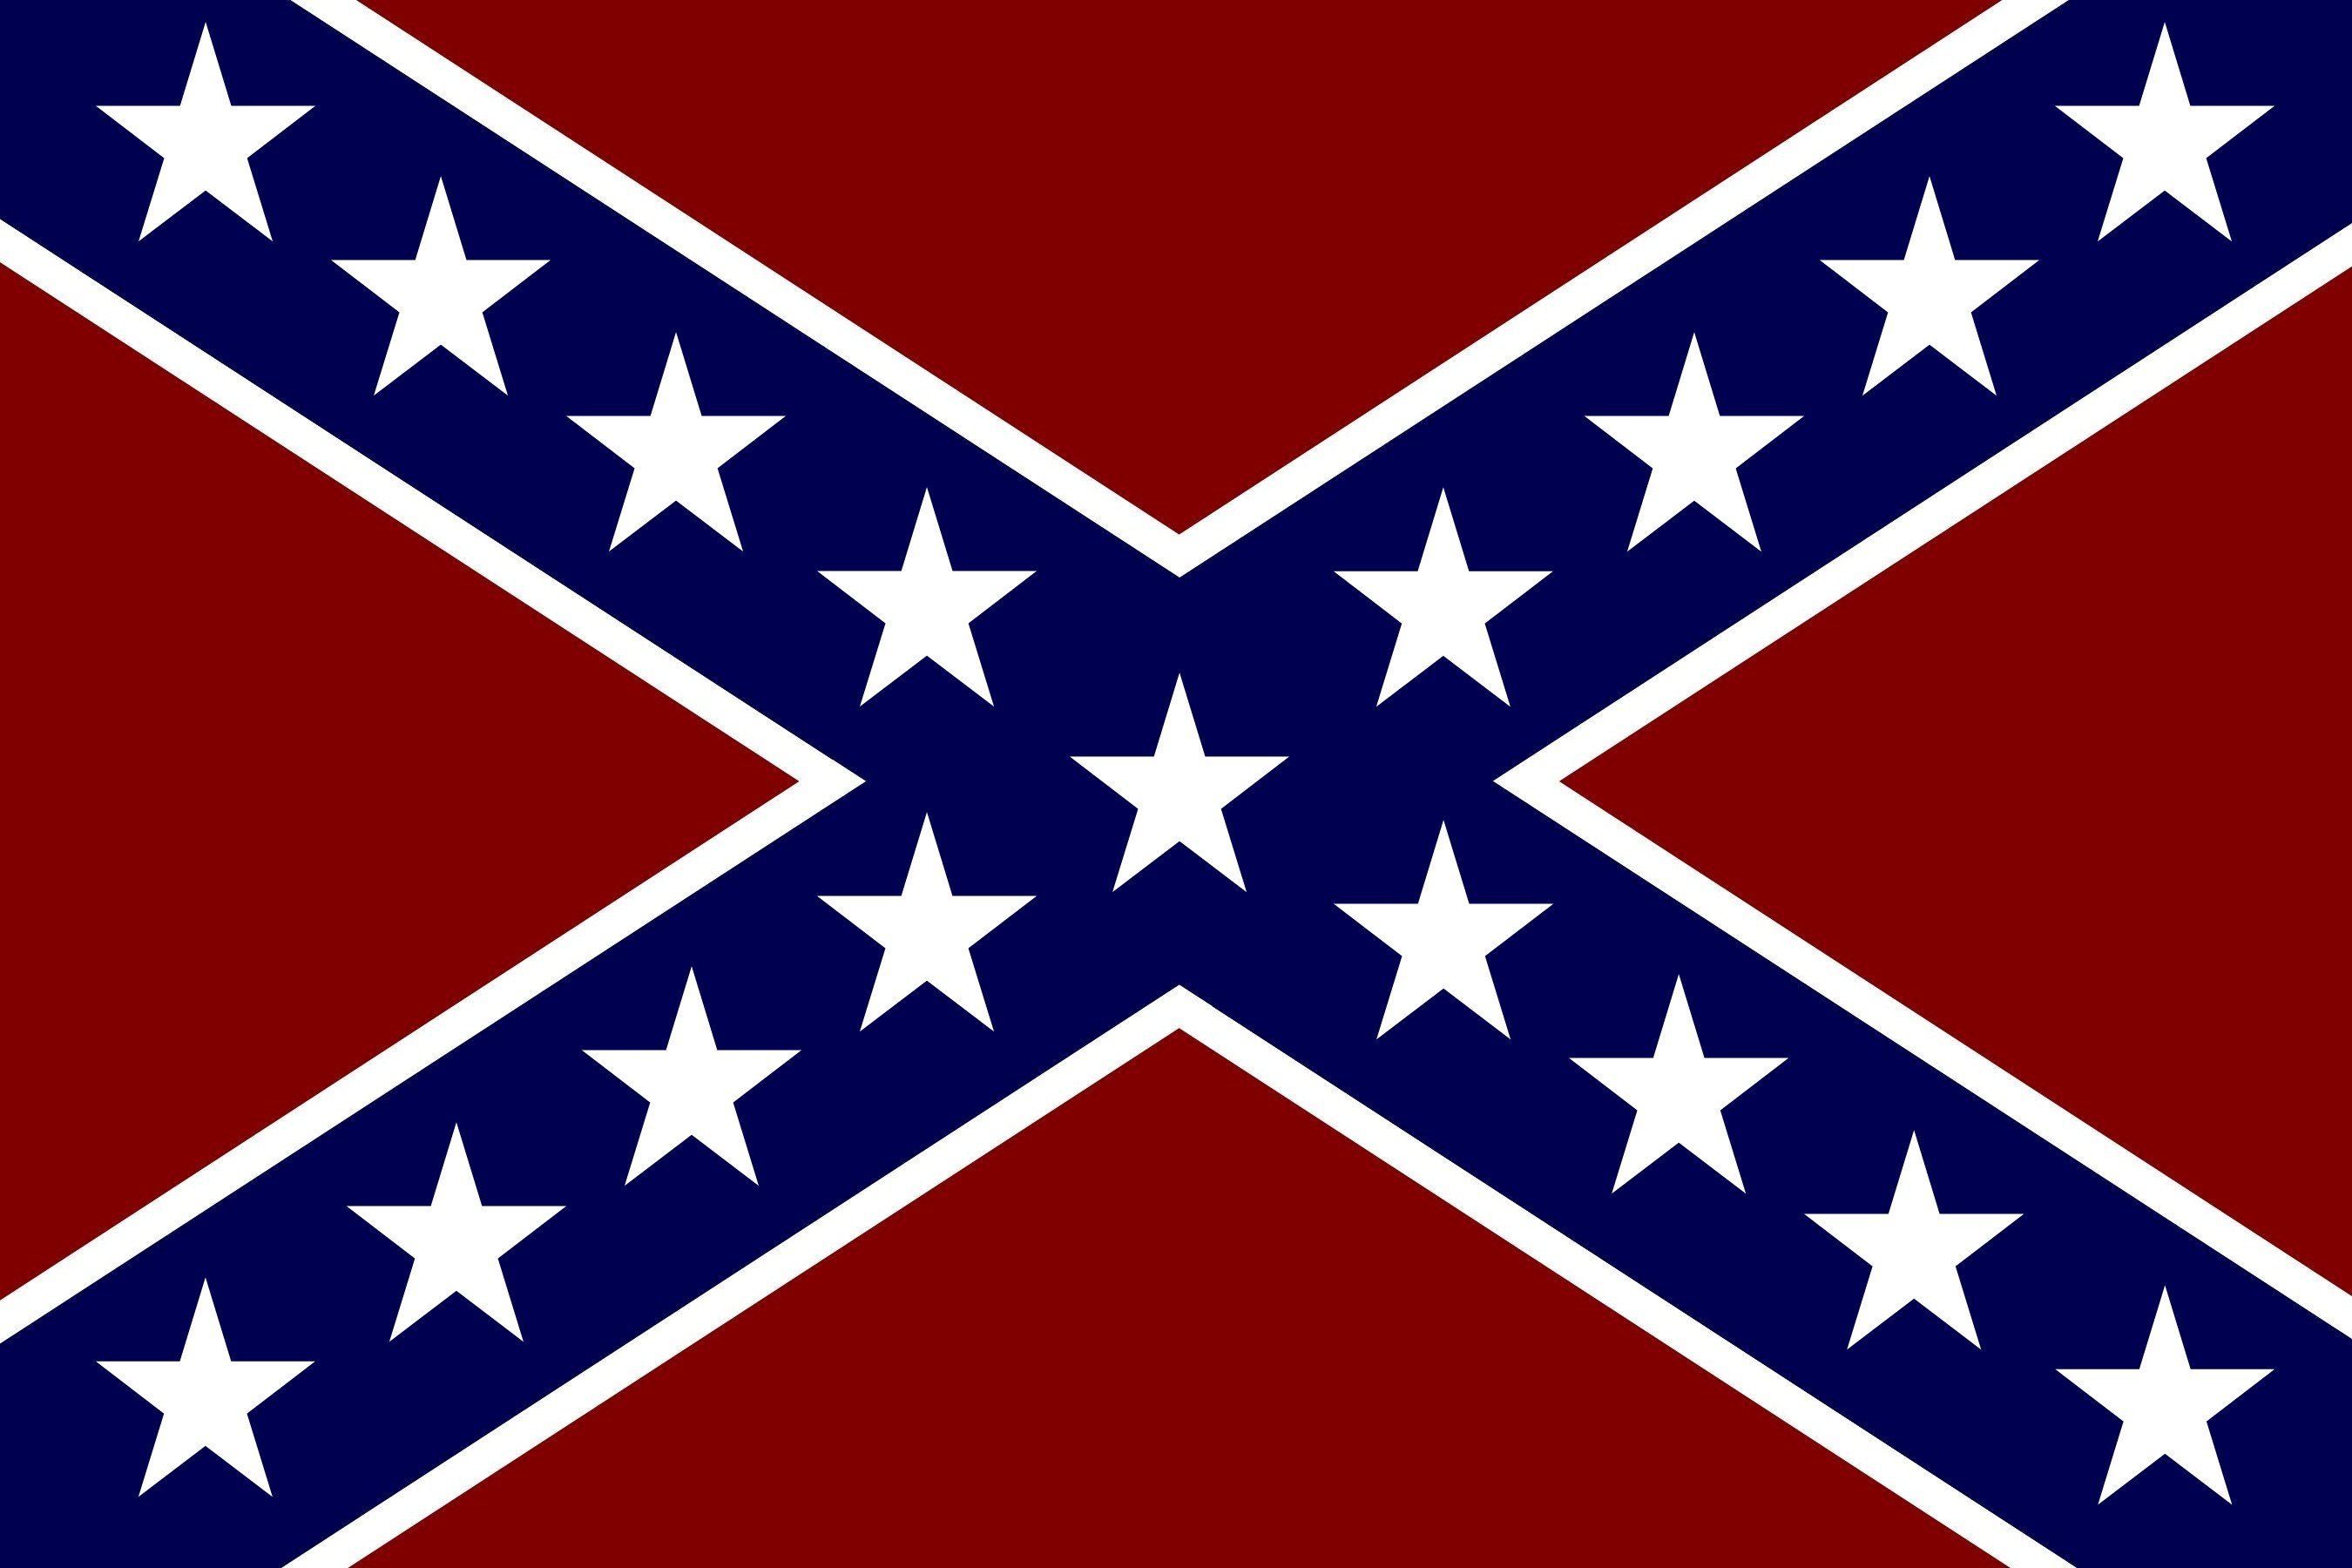 CONFEDERATE flag usa america united states csa civil war rebel dixie 2700x1800